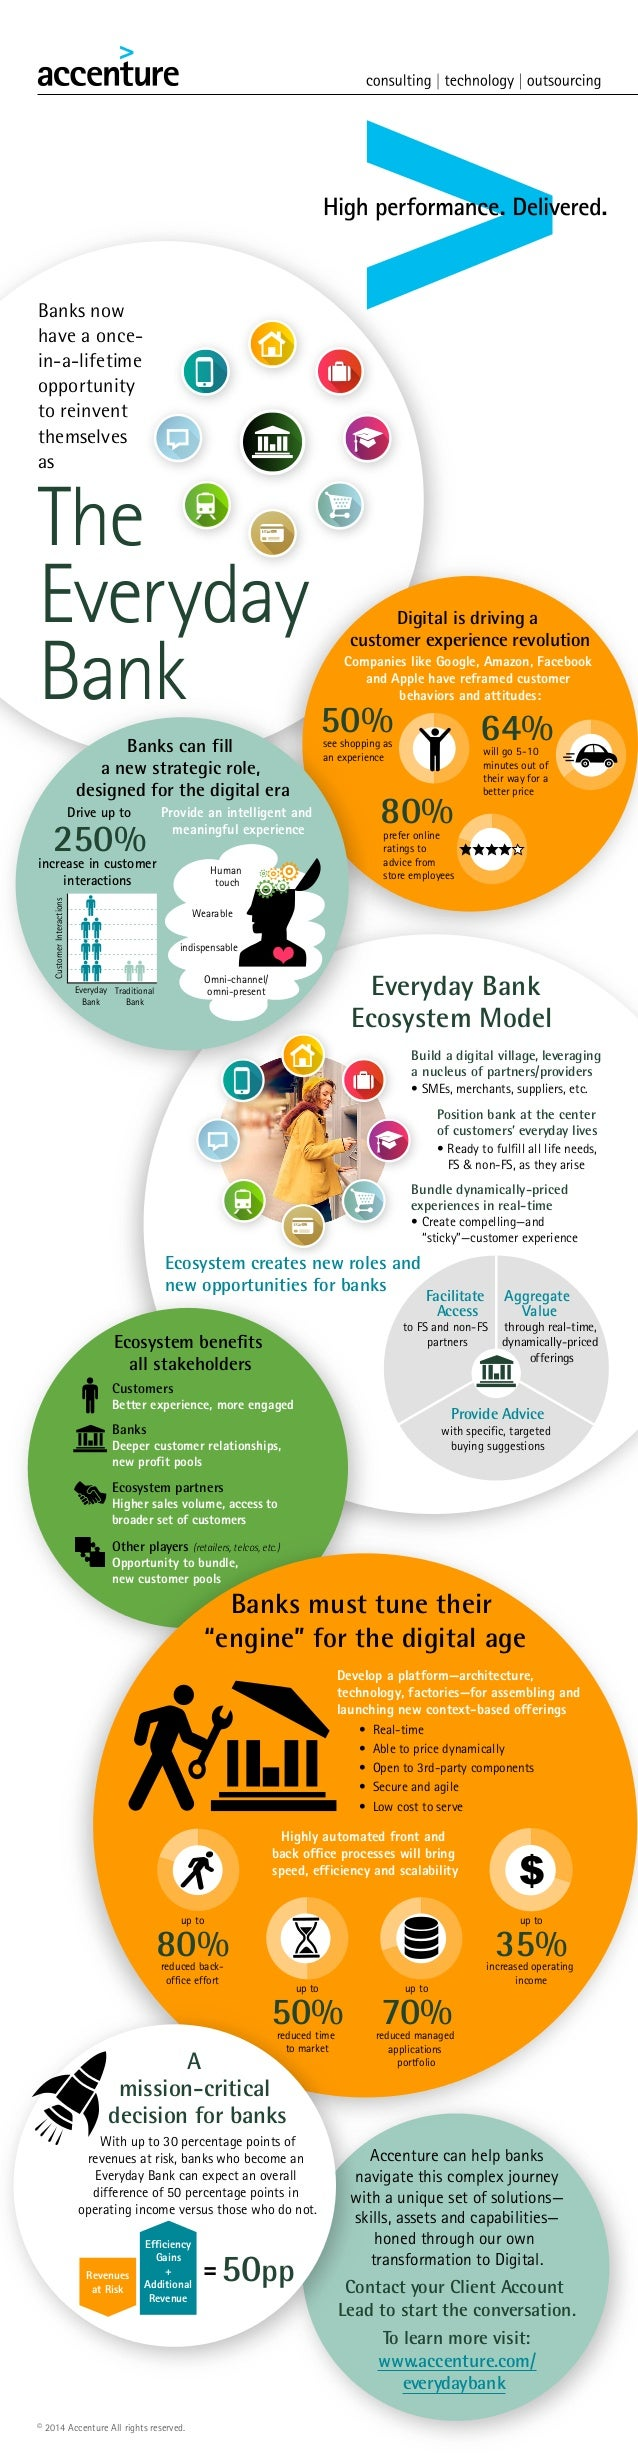 Banks now have a oncein-a-lifetime opportunity to reinvent themselves as  The Everyday Bank 50%  Digital is driving a cust...